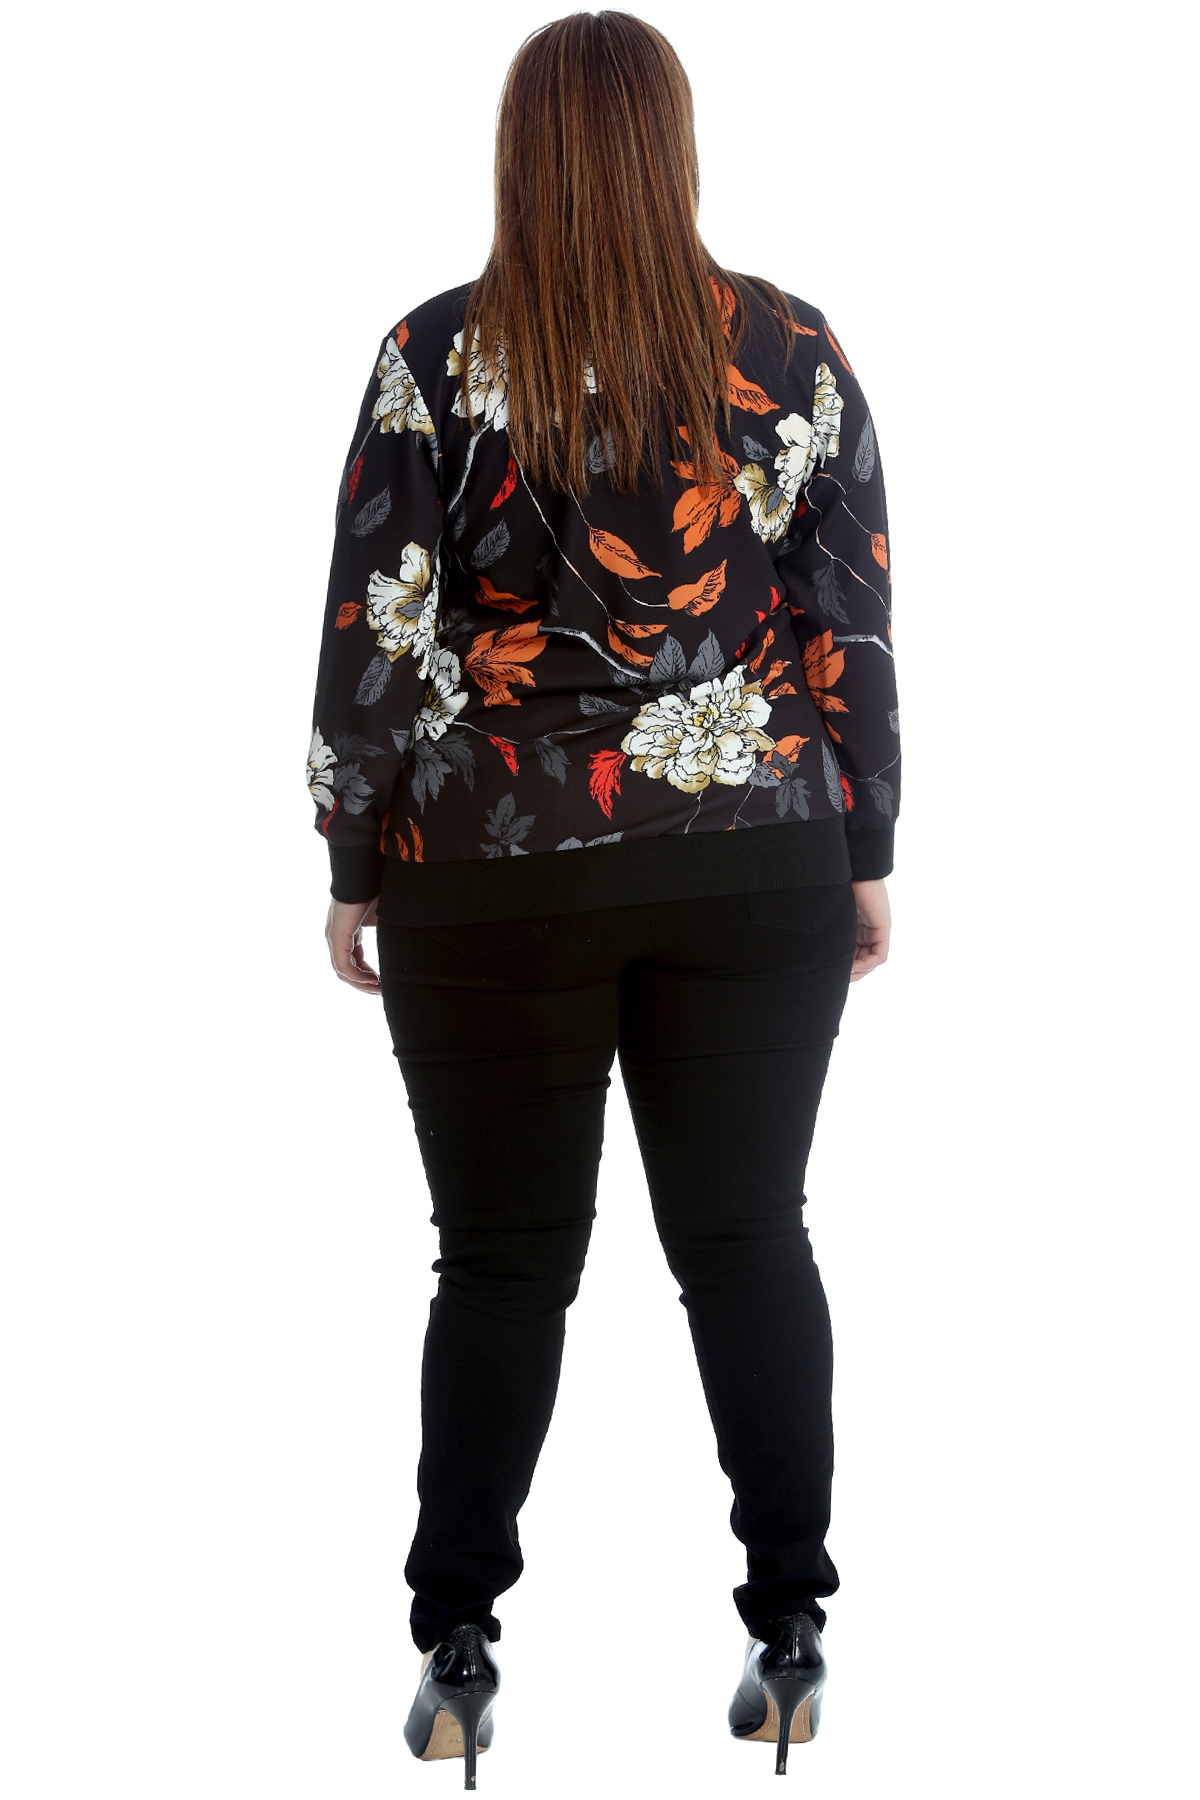 New Ladies Plus Size Bomber Jacket Womens Floral Print Ribbed Crepe Fabric Sale